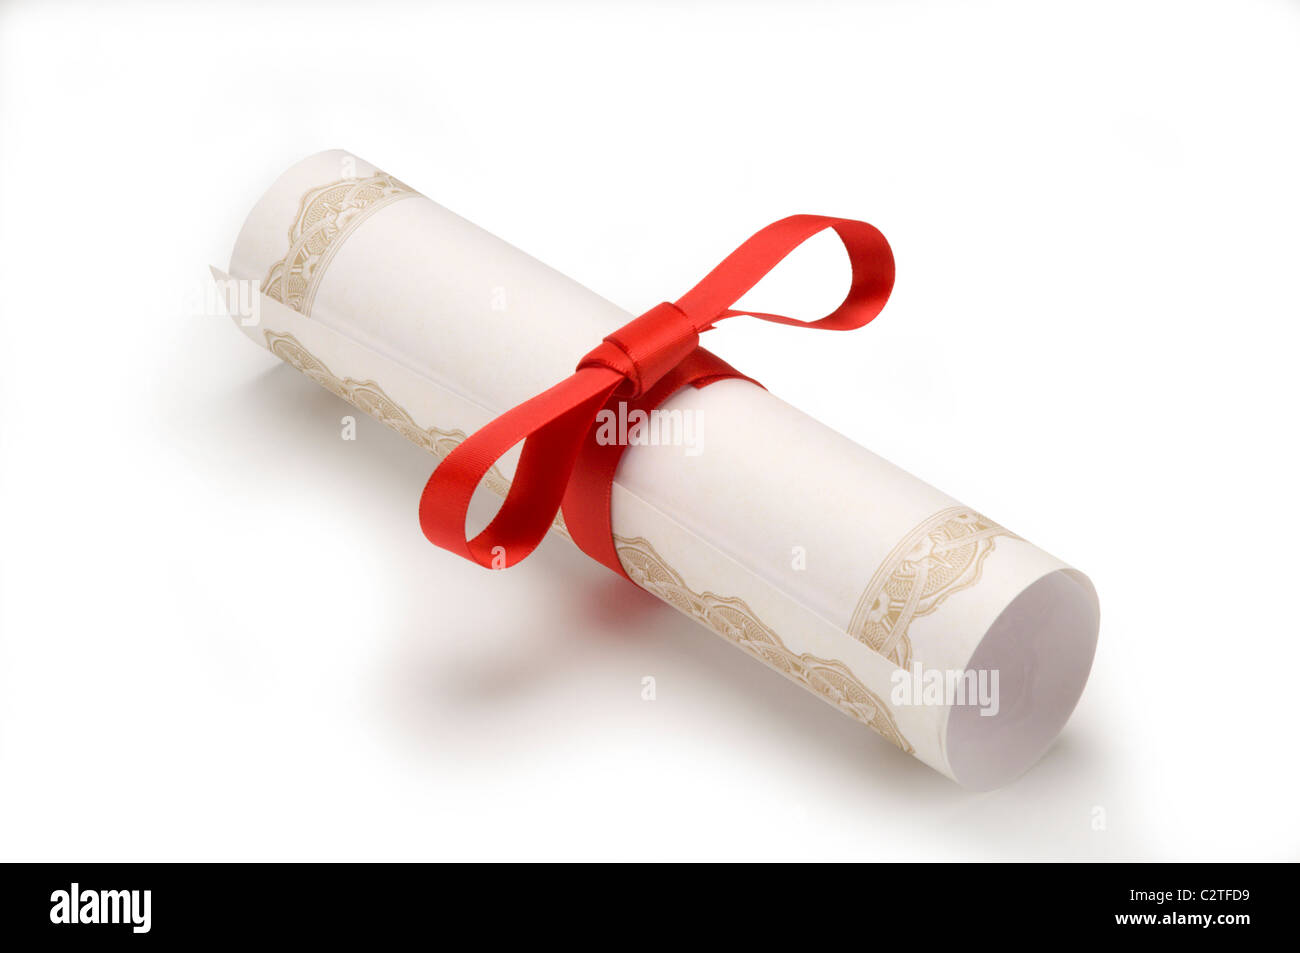 Diploma wrapped in red ribbon on white - Stock Image